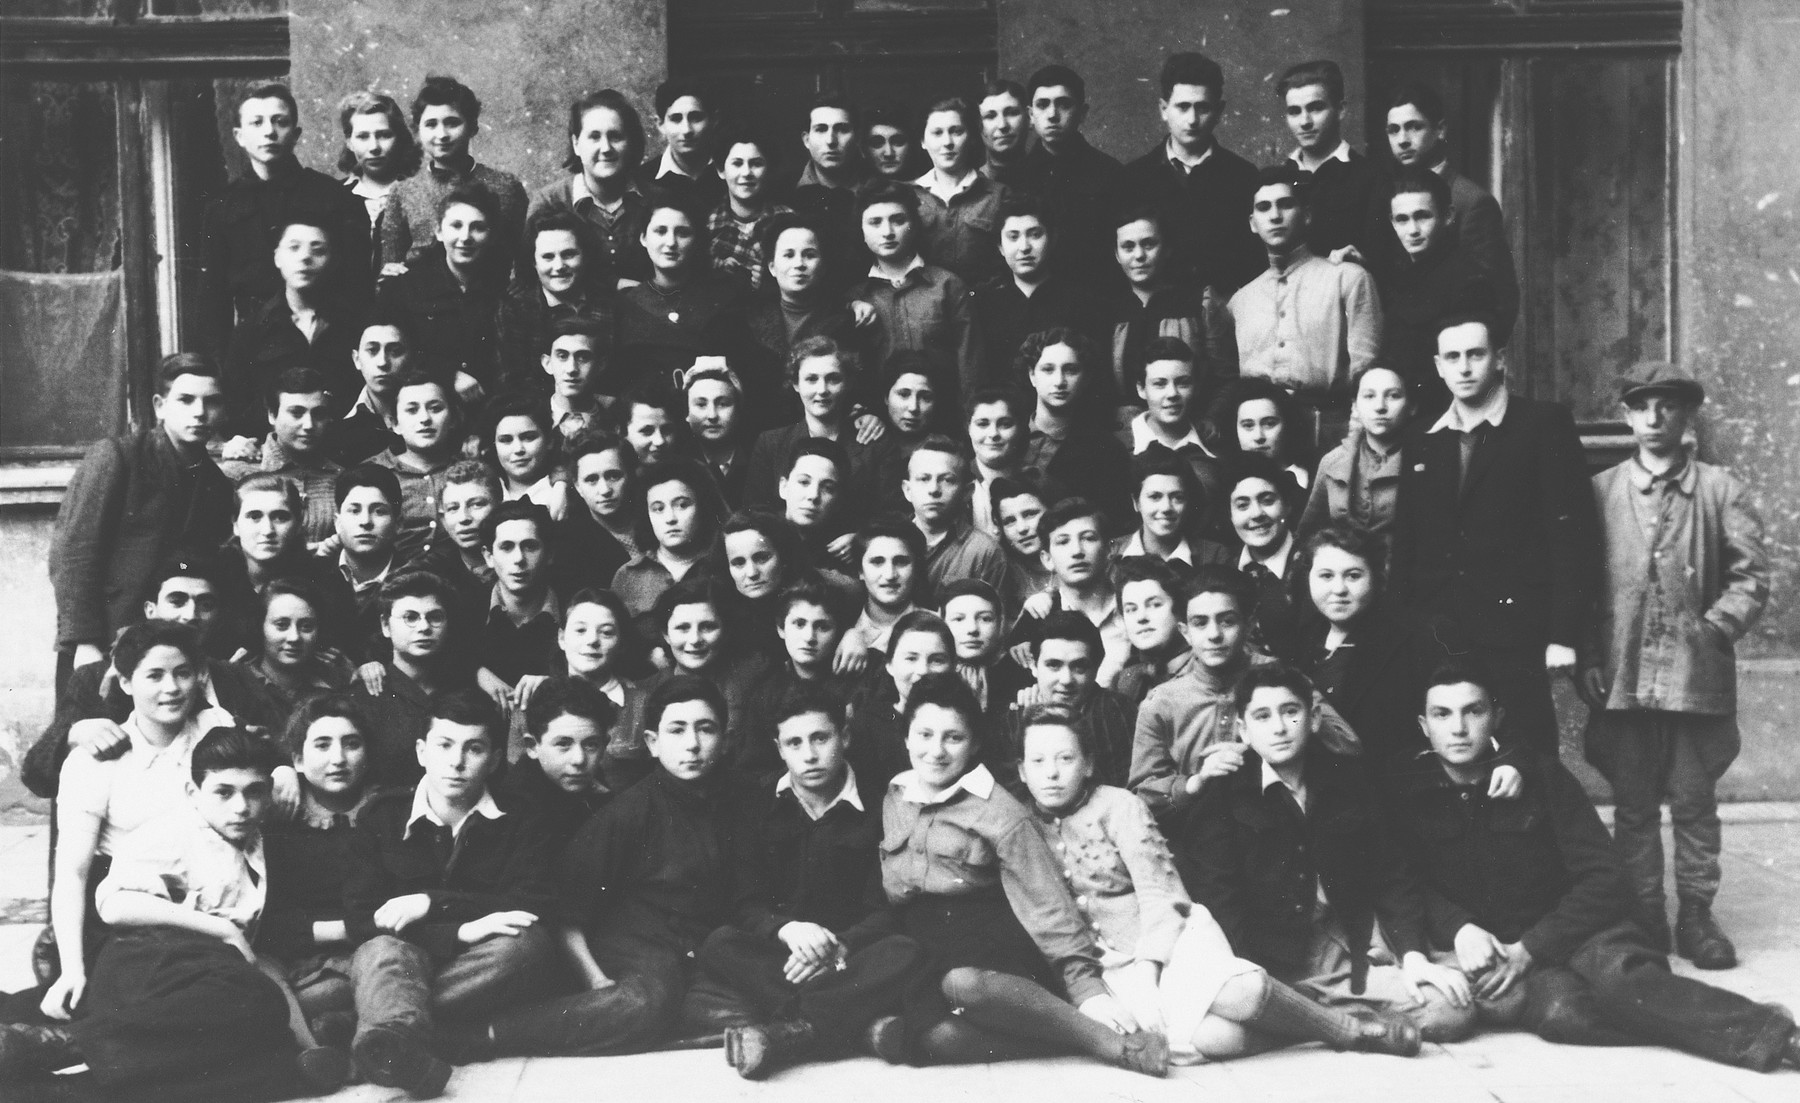 Group portrait of a Zionist children's home in Lodz.